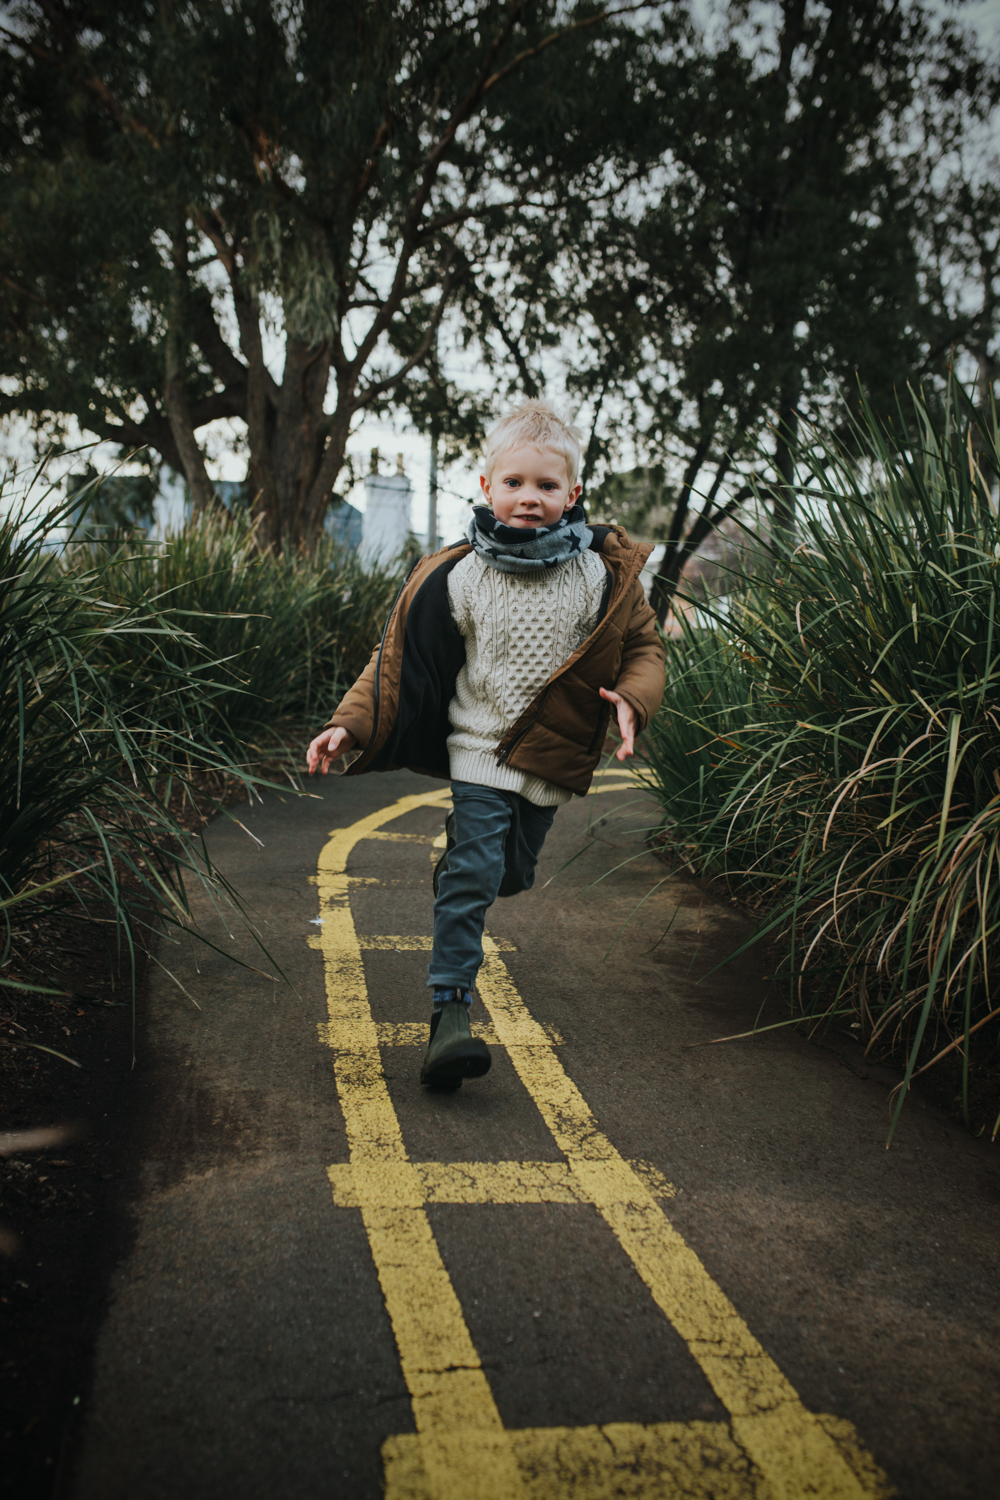 Young blonde boy runs through park wearing Blundstone boots in Hobart Tasmania.